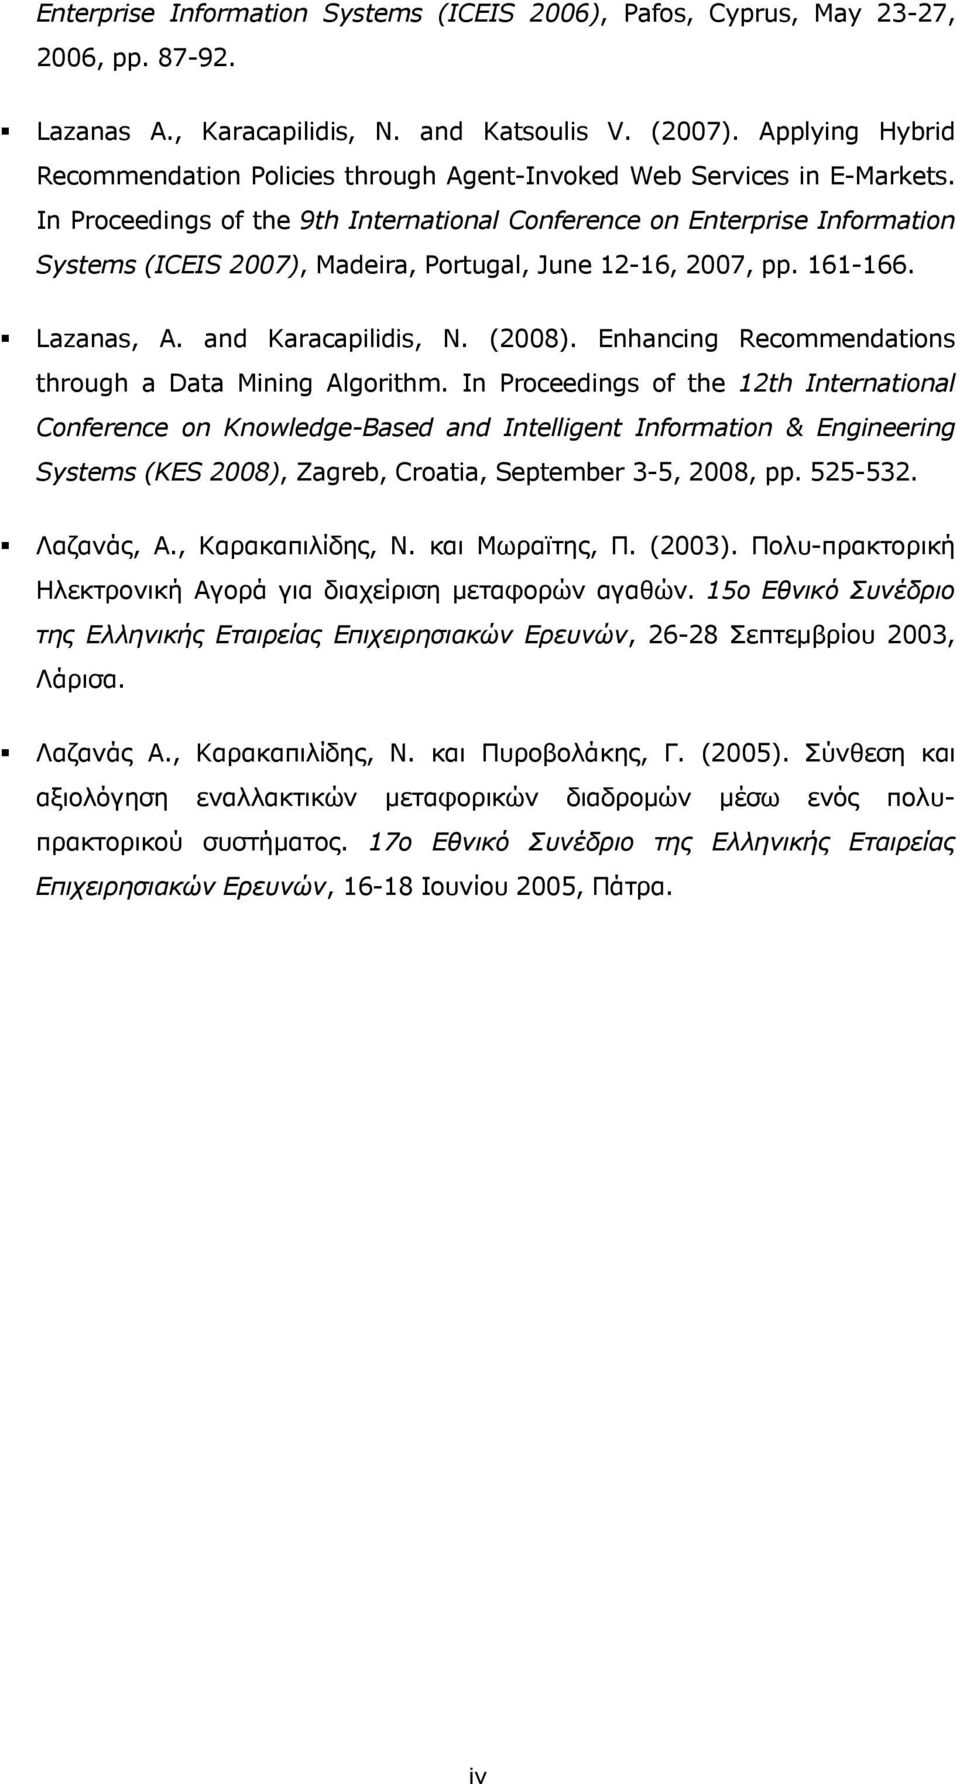 In Proceedings of the 9th International Conference on Enterprise Information Systems (ICEIS 2007), Madeira, Portugal, June 12-16, 2007, pp. 161-166. Lazanas, A. and Karacapilidis, N. (2008).